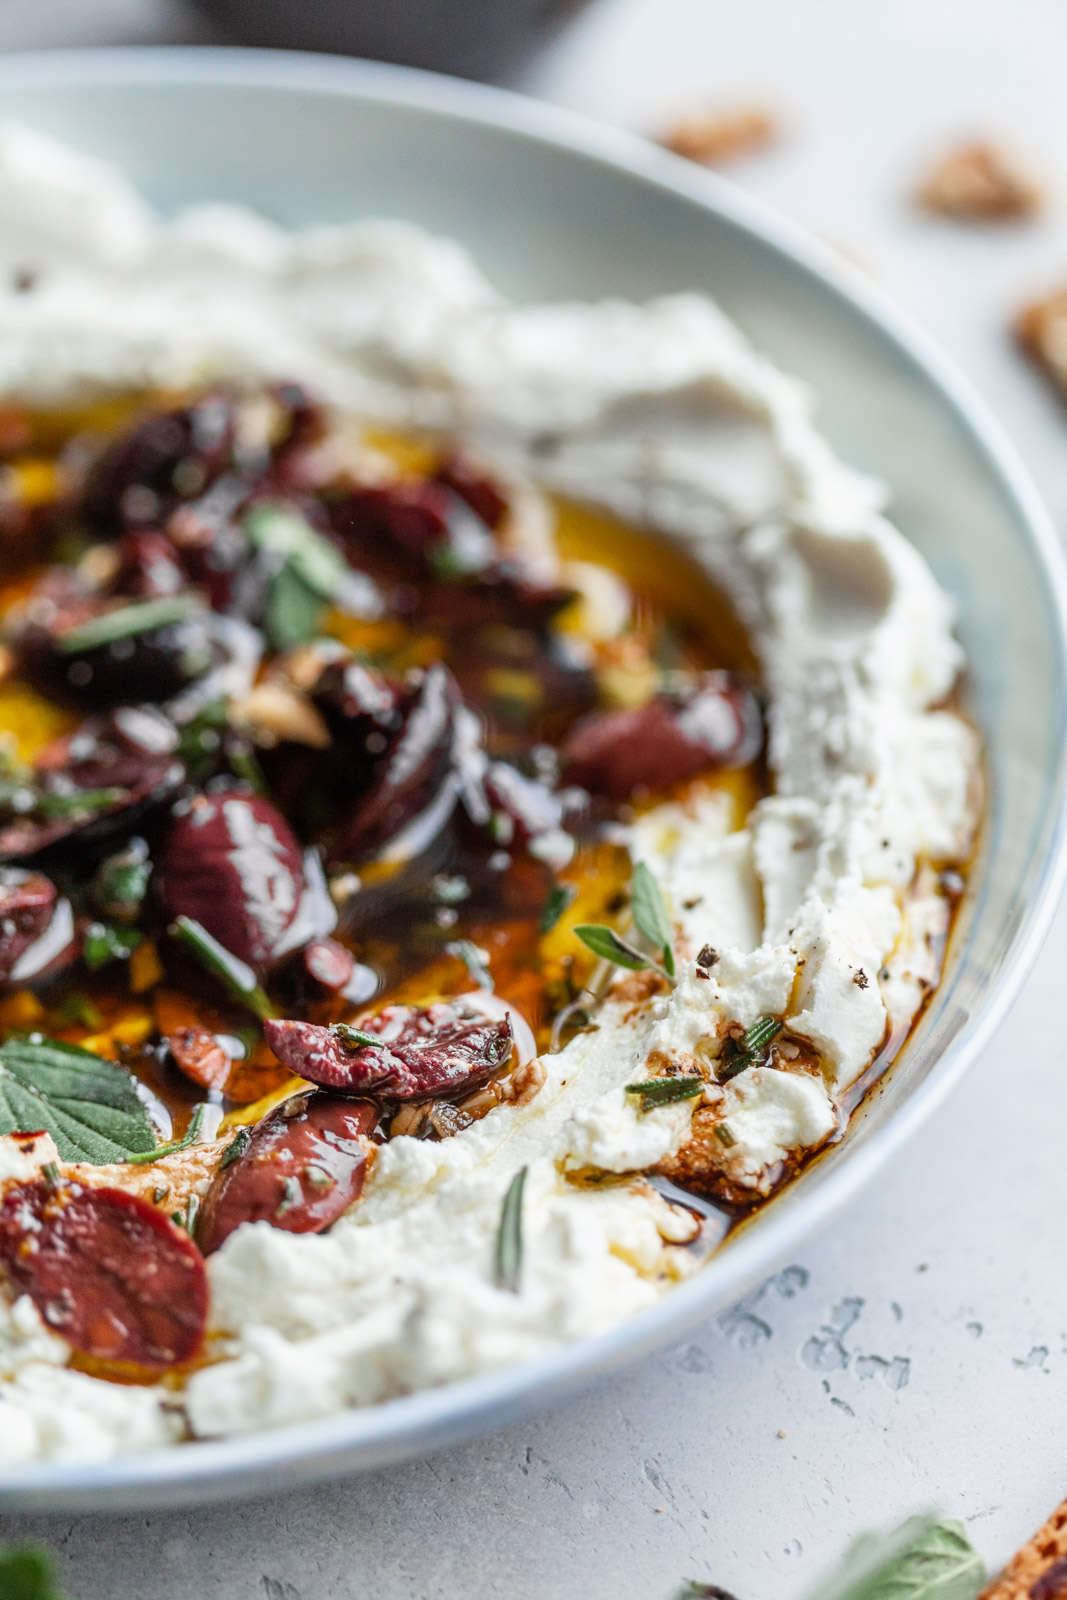 Marinated Goat Cheese Spread